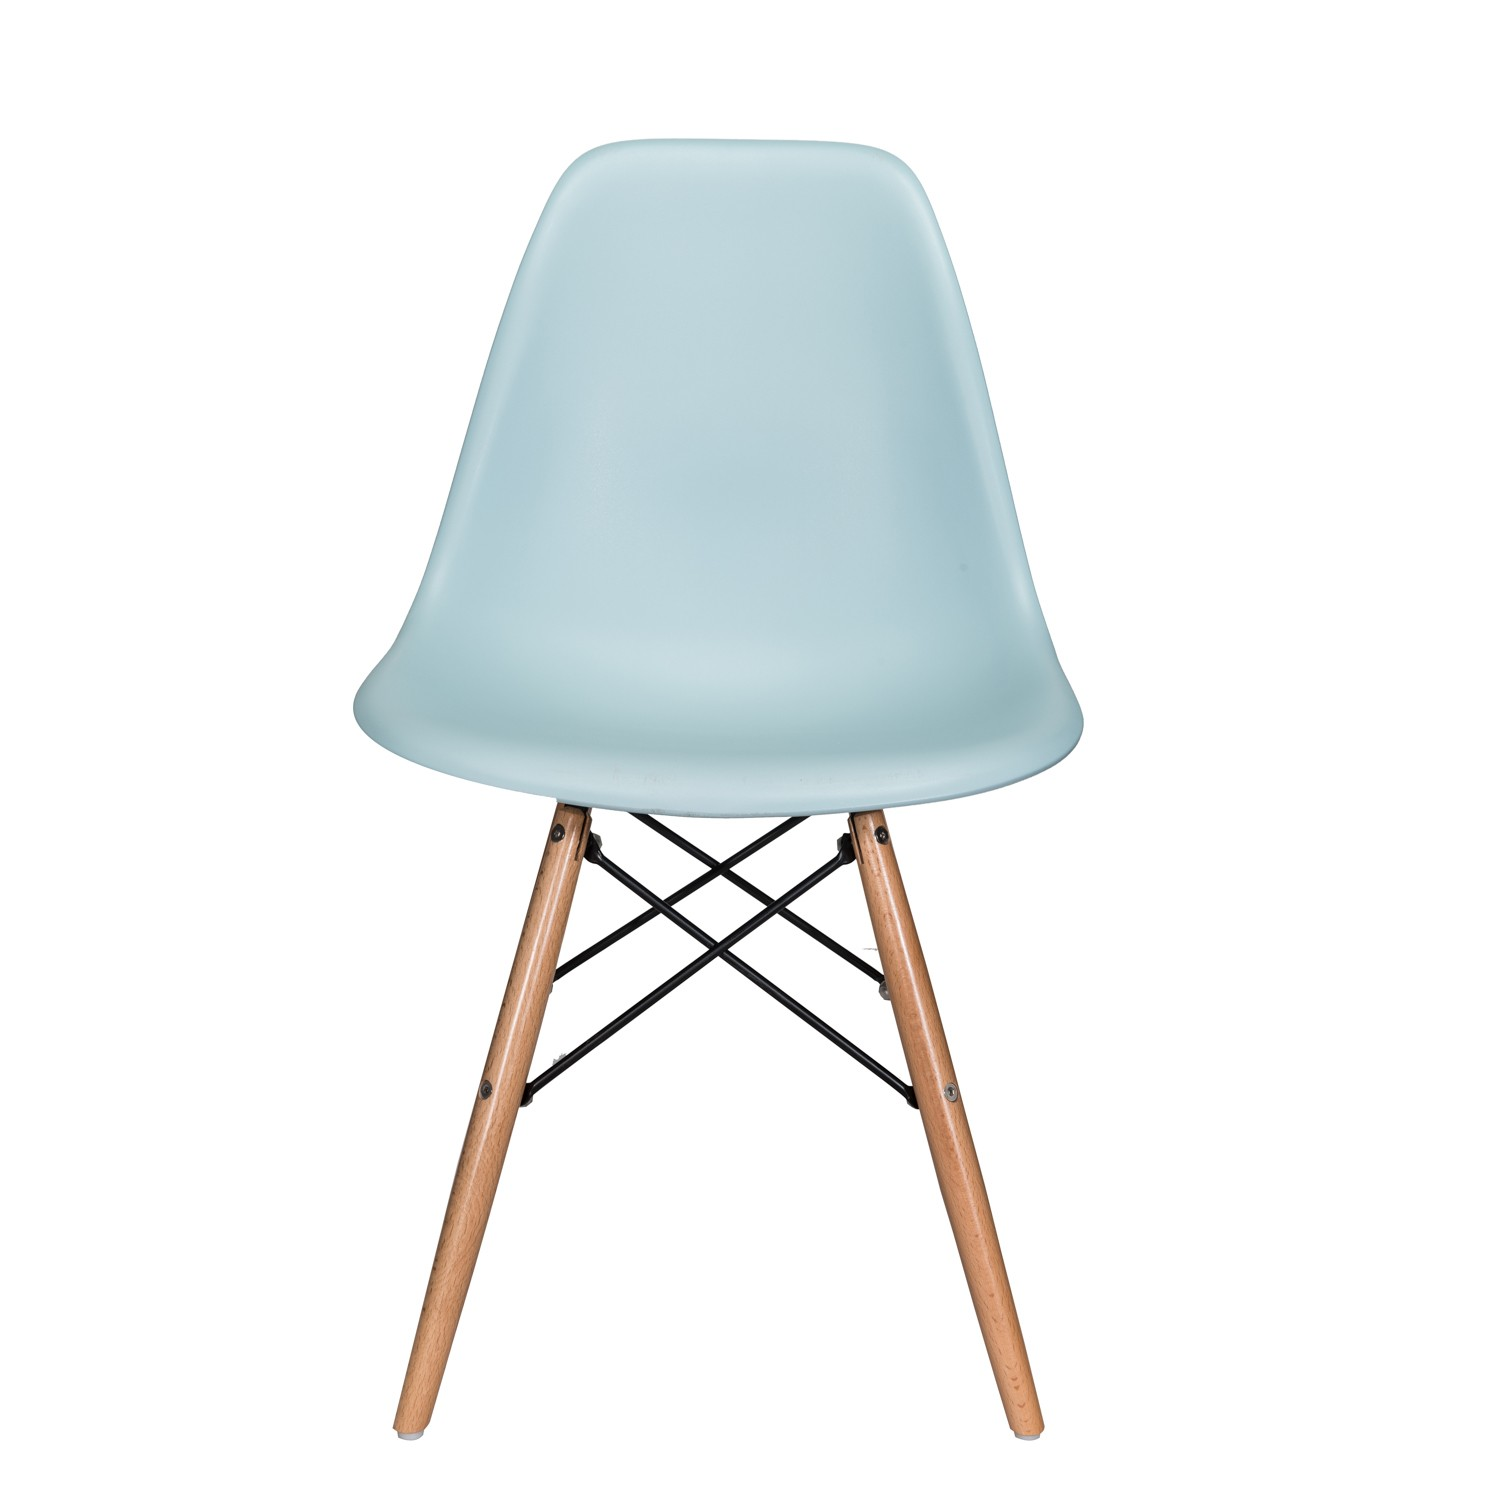 nature series ice blue eames style dsw molded plastic dining side chair natural beech wood. Black Bedroom Furniture Sets. Home Design Ideas